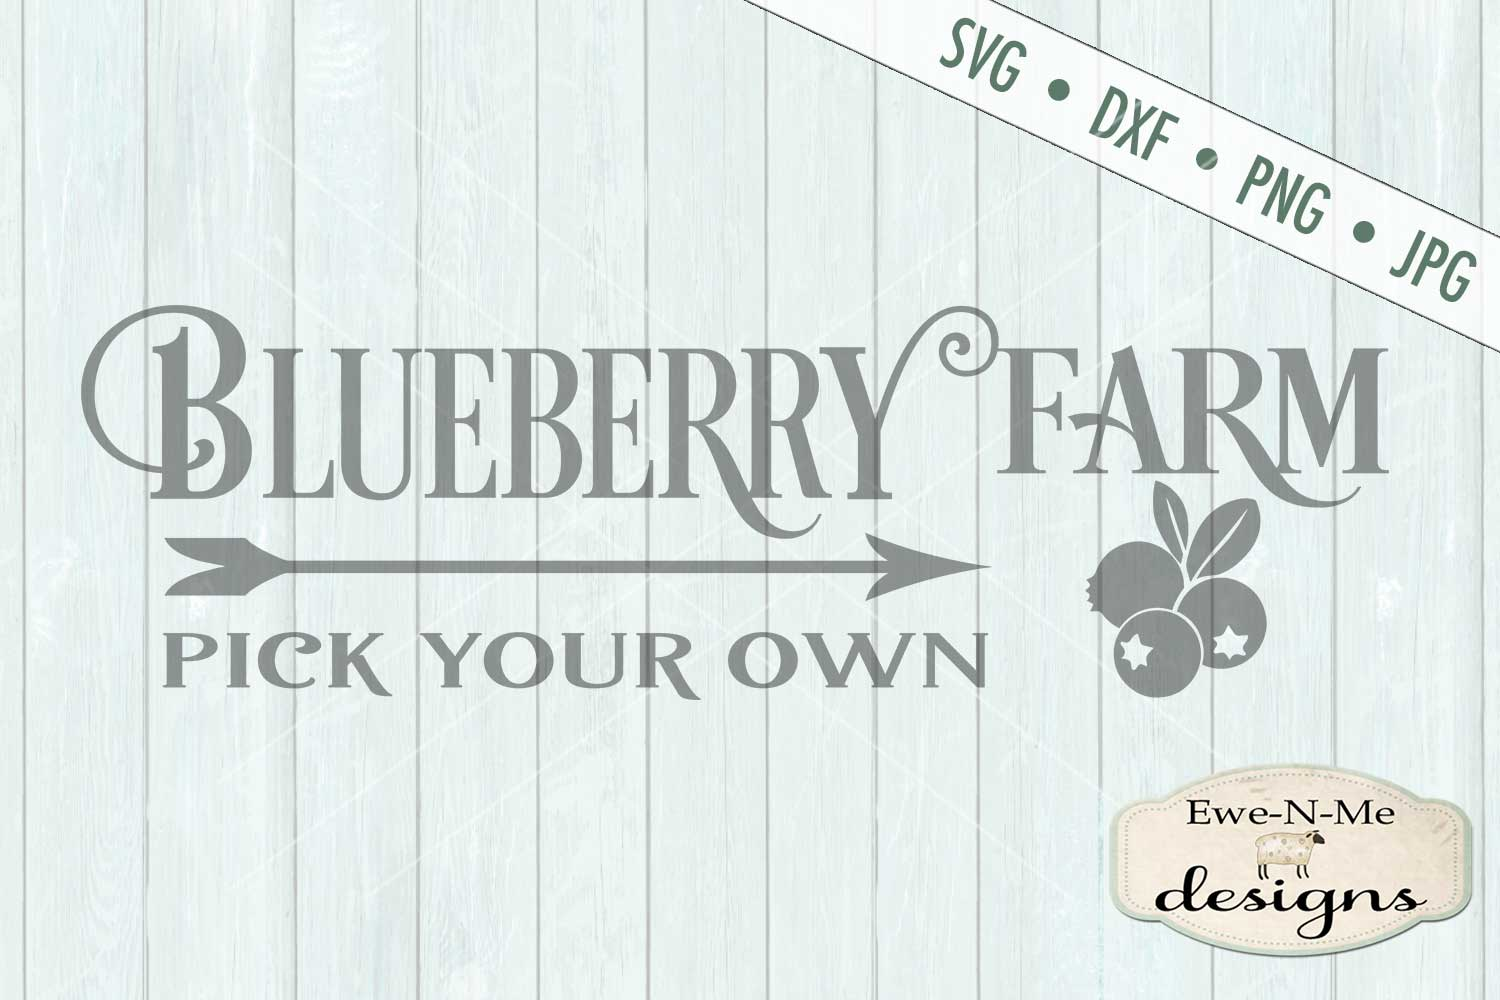 Blueberry Farm - Pick Your Own - Farm Rustic - SVG DXF Files example image 2